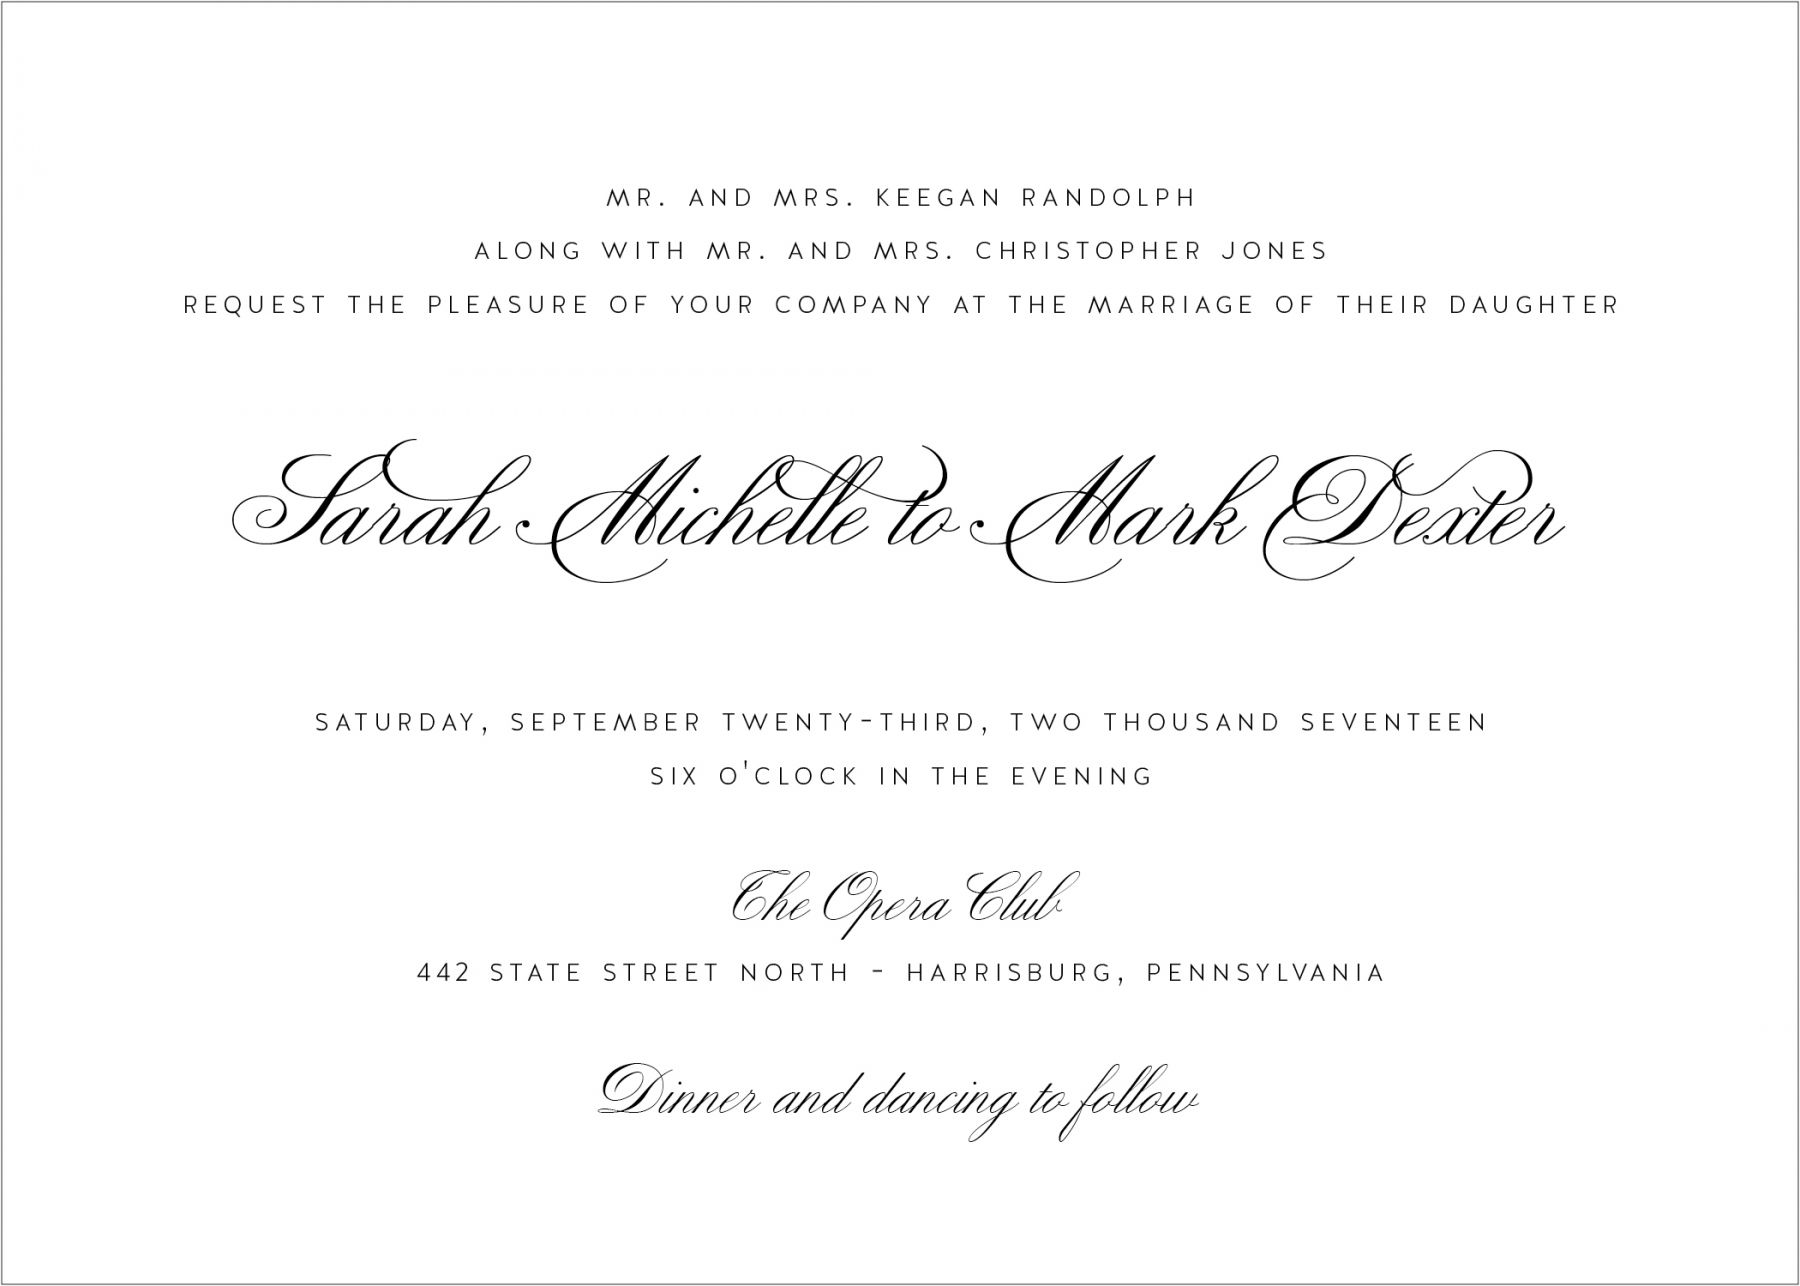 How To Write Invitation For Wedding: What's In A Wedding Invitation?